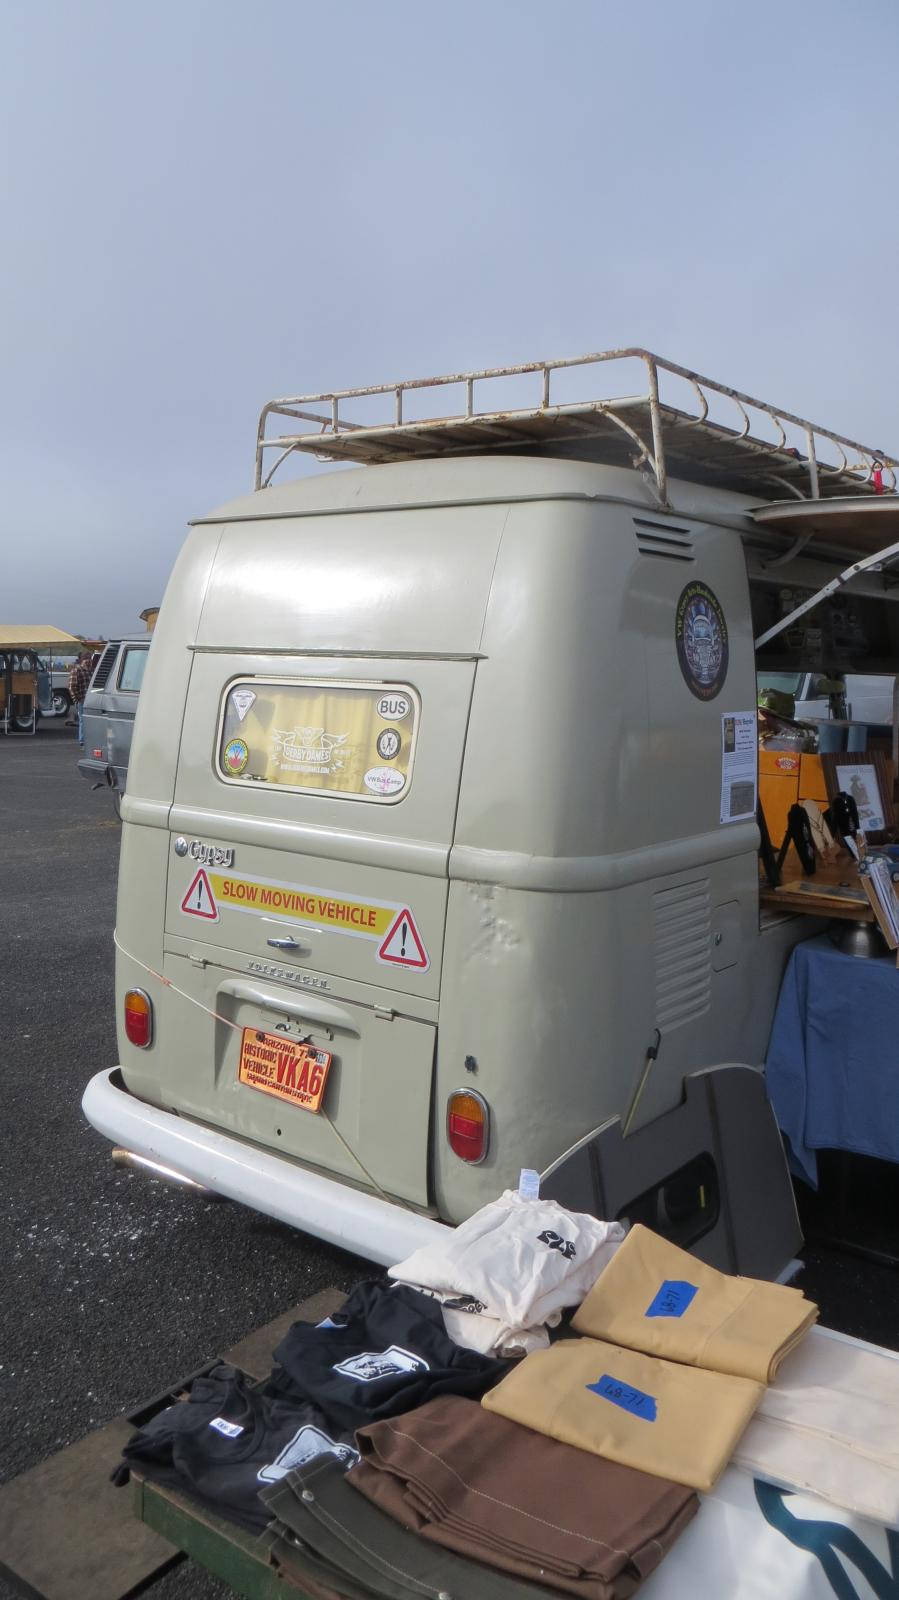 High Roof Bus Photos from Red Barn 2019 (Sat. April 13th, 2019)